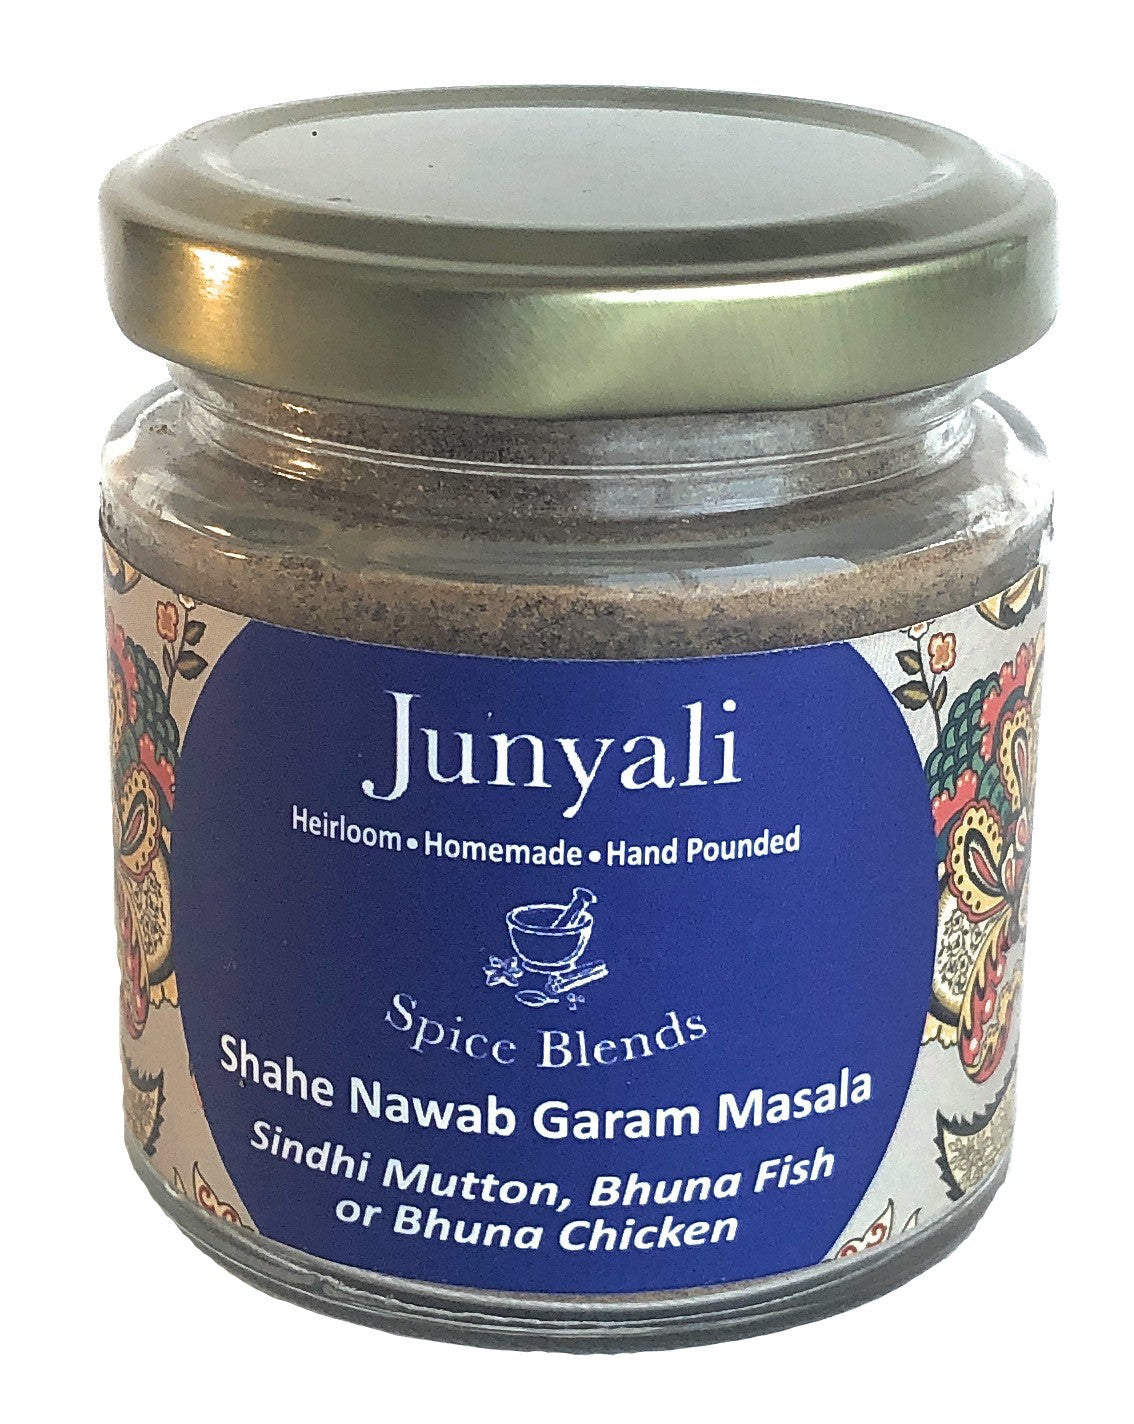 Gift Pack of Sindhi Spice Blends - Pack of 3